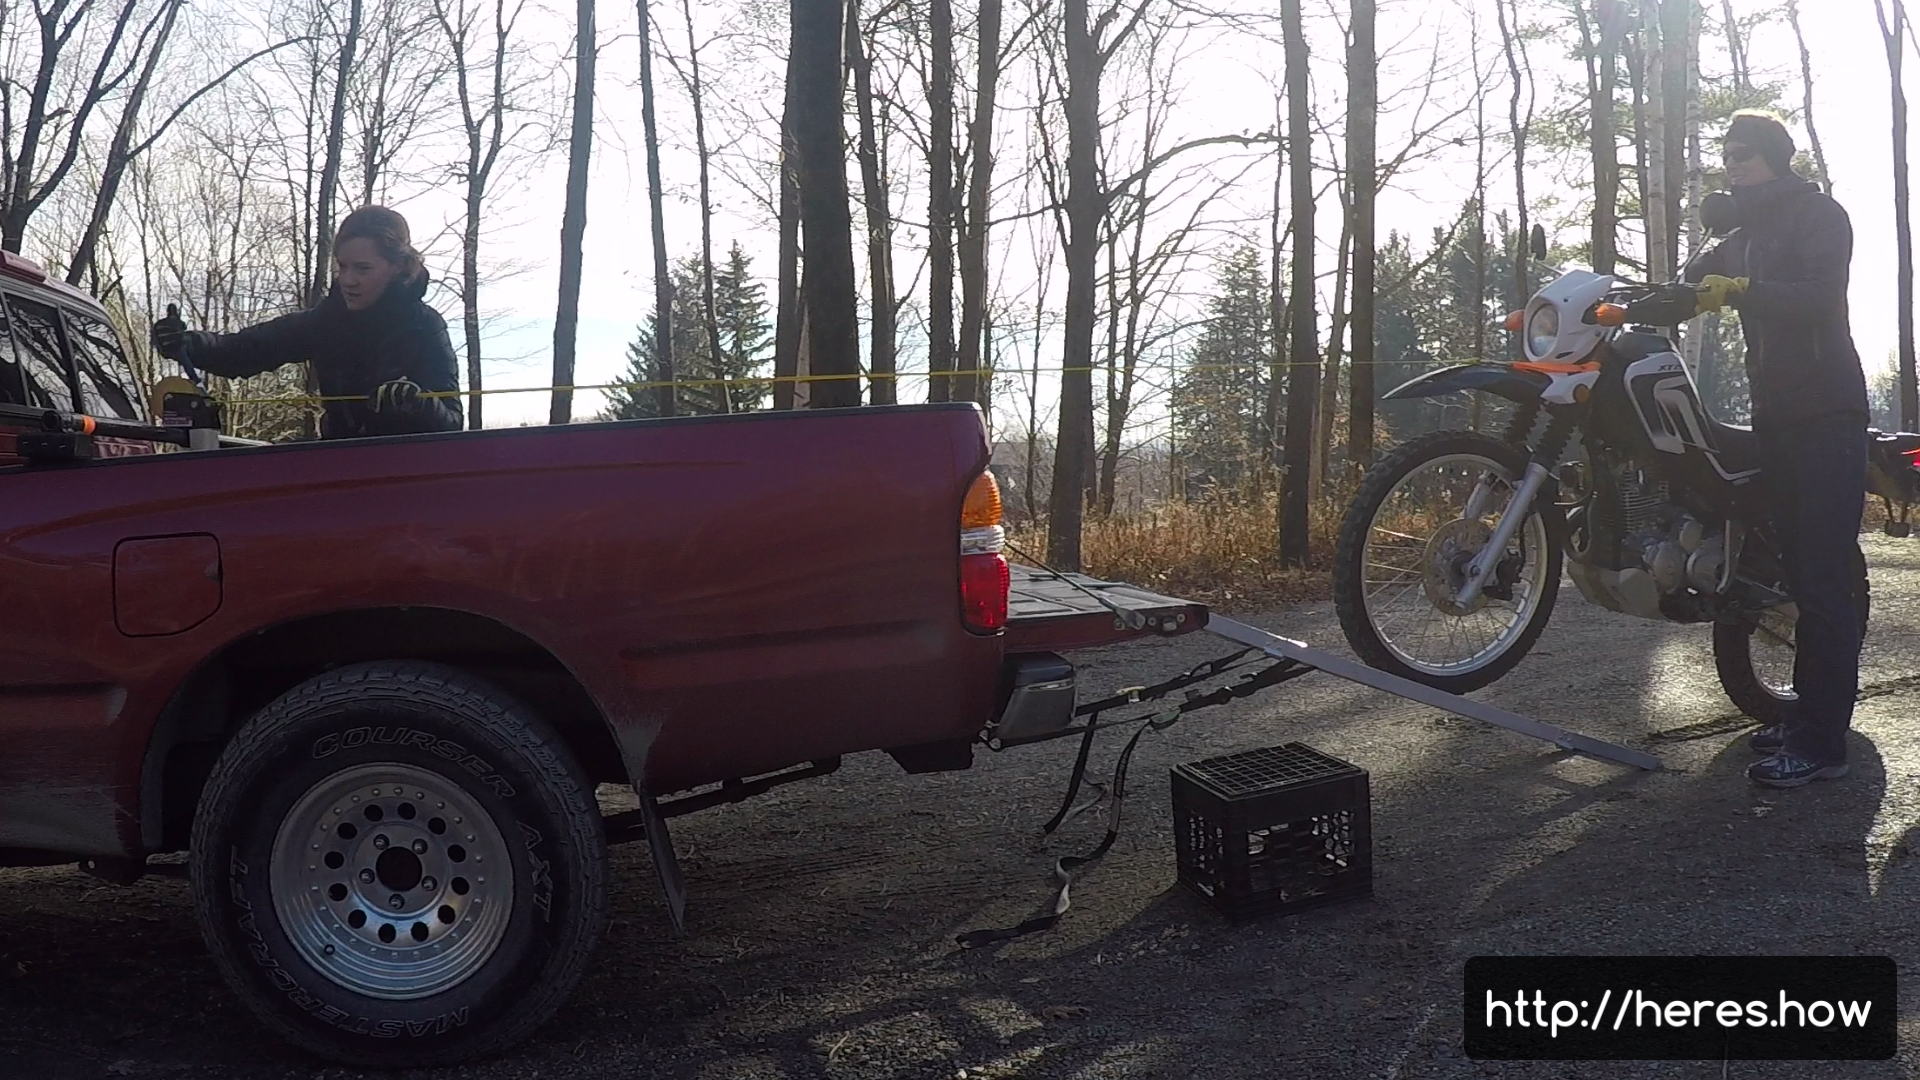 DIY portable winch system — Easily load a motorcycle in a pickup truck